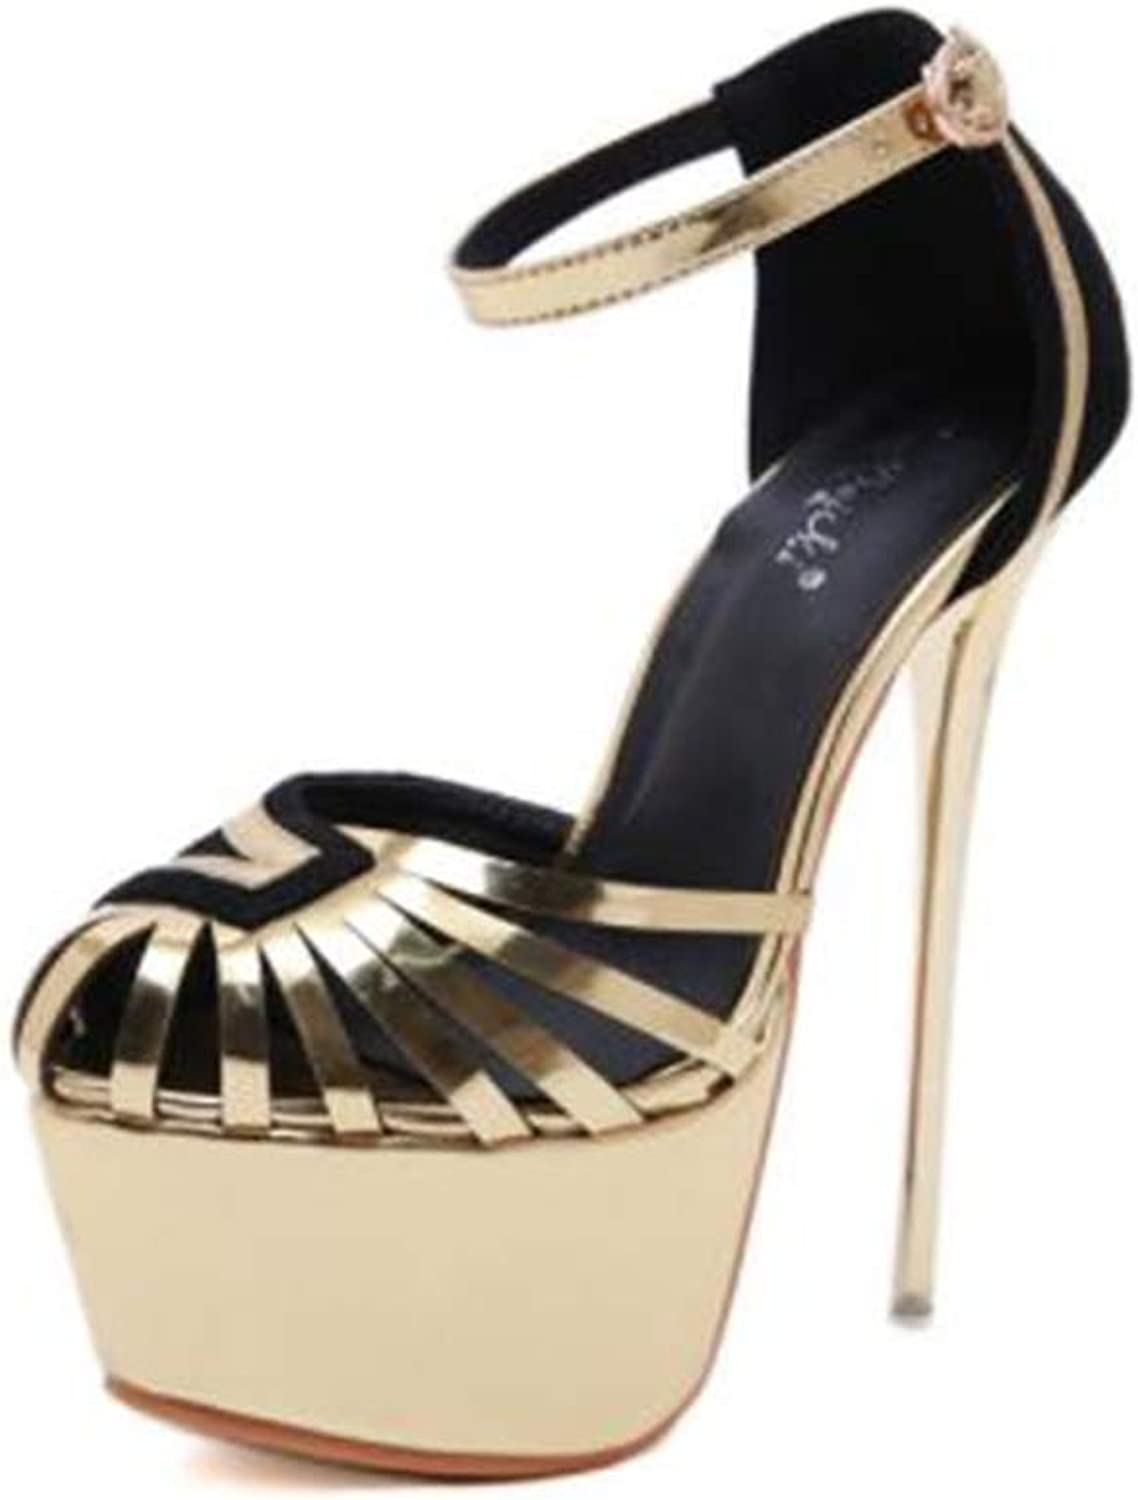 Cloudless Women's High Heels Sandals with Ankle Strappy Clear Chunky Heels Dress Party Pumps shoes